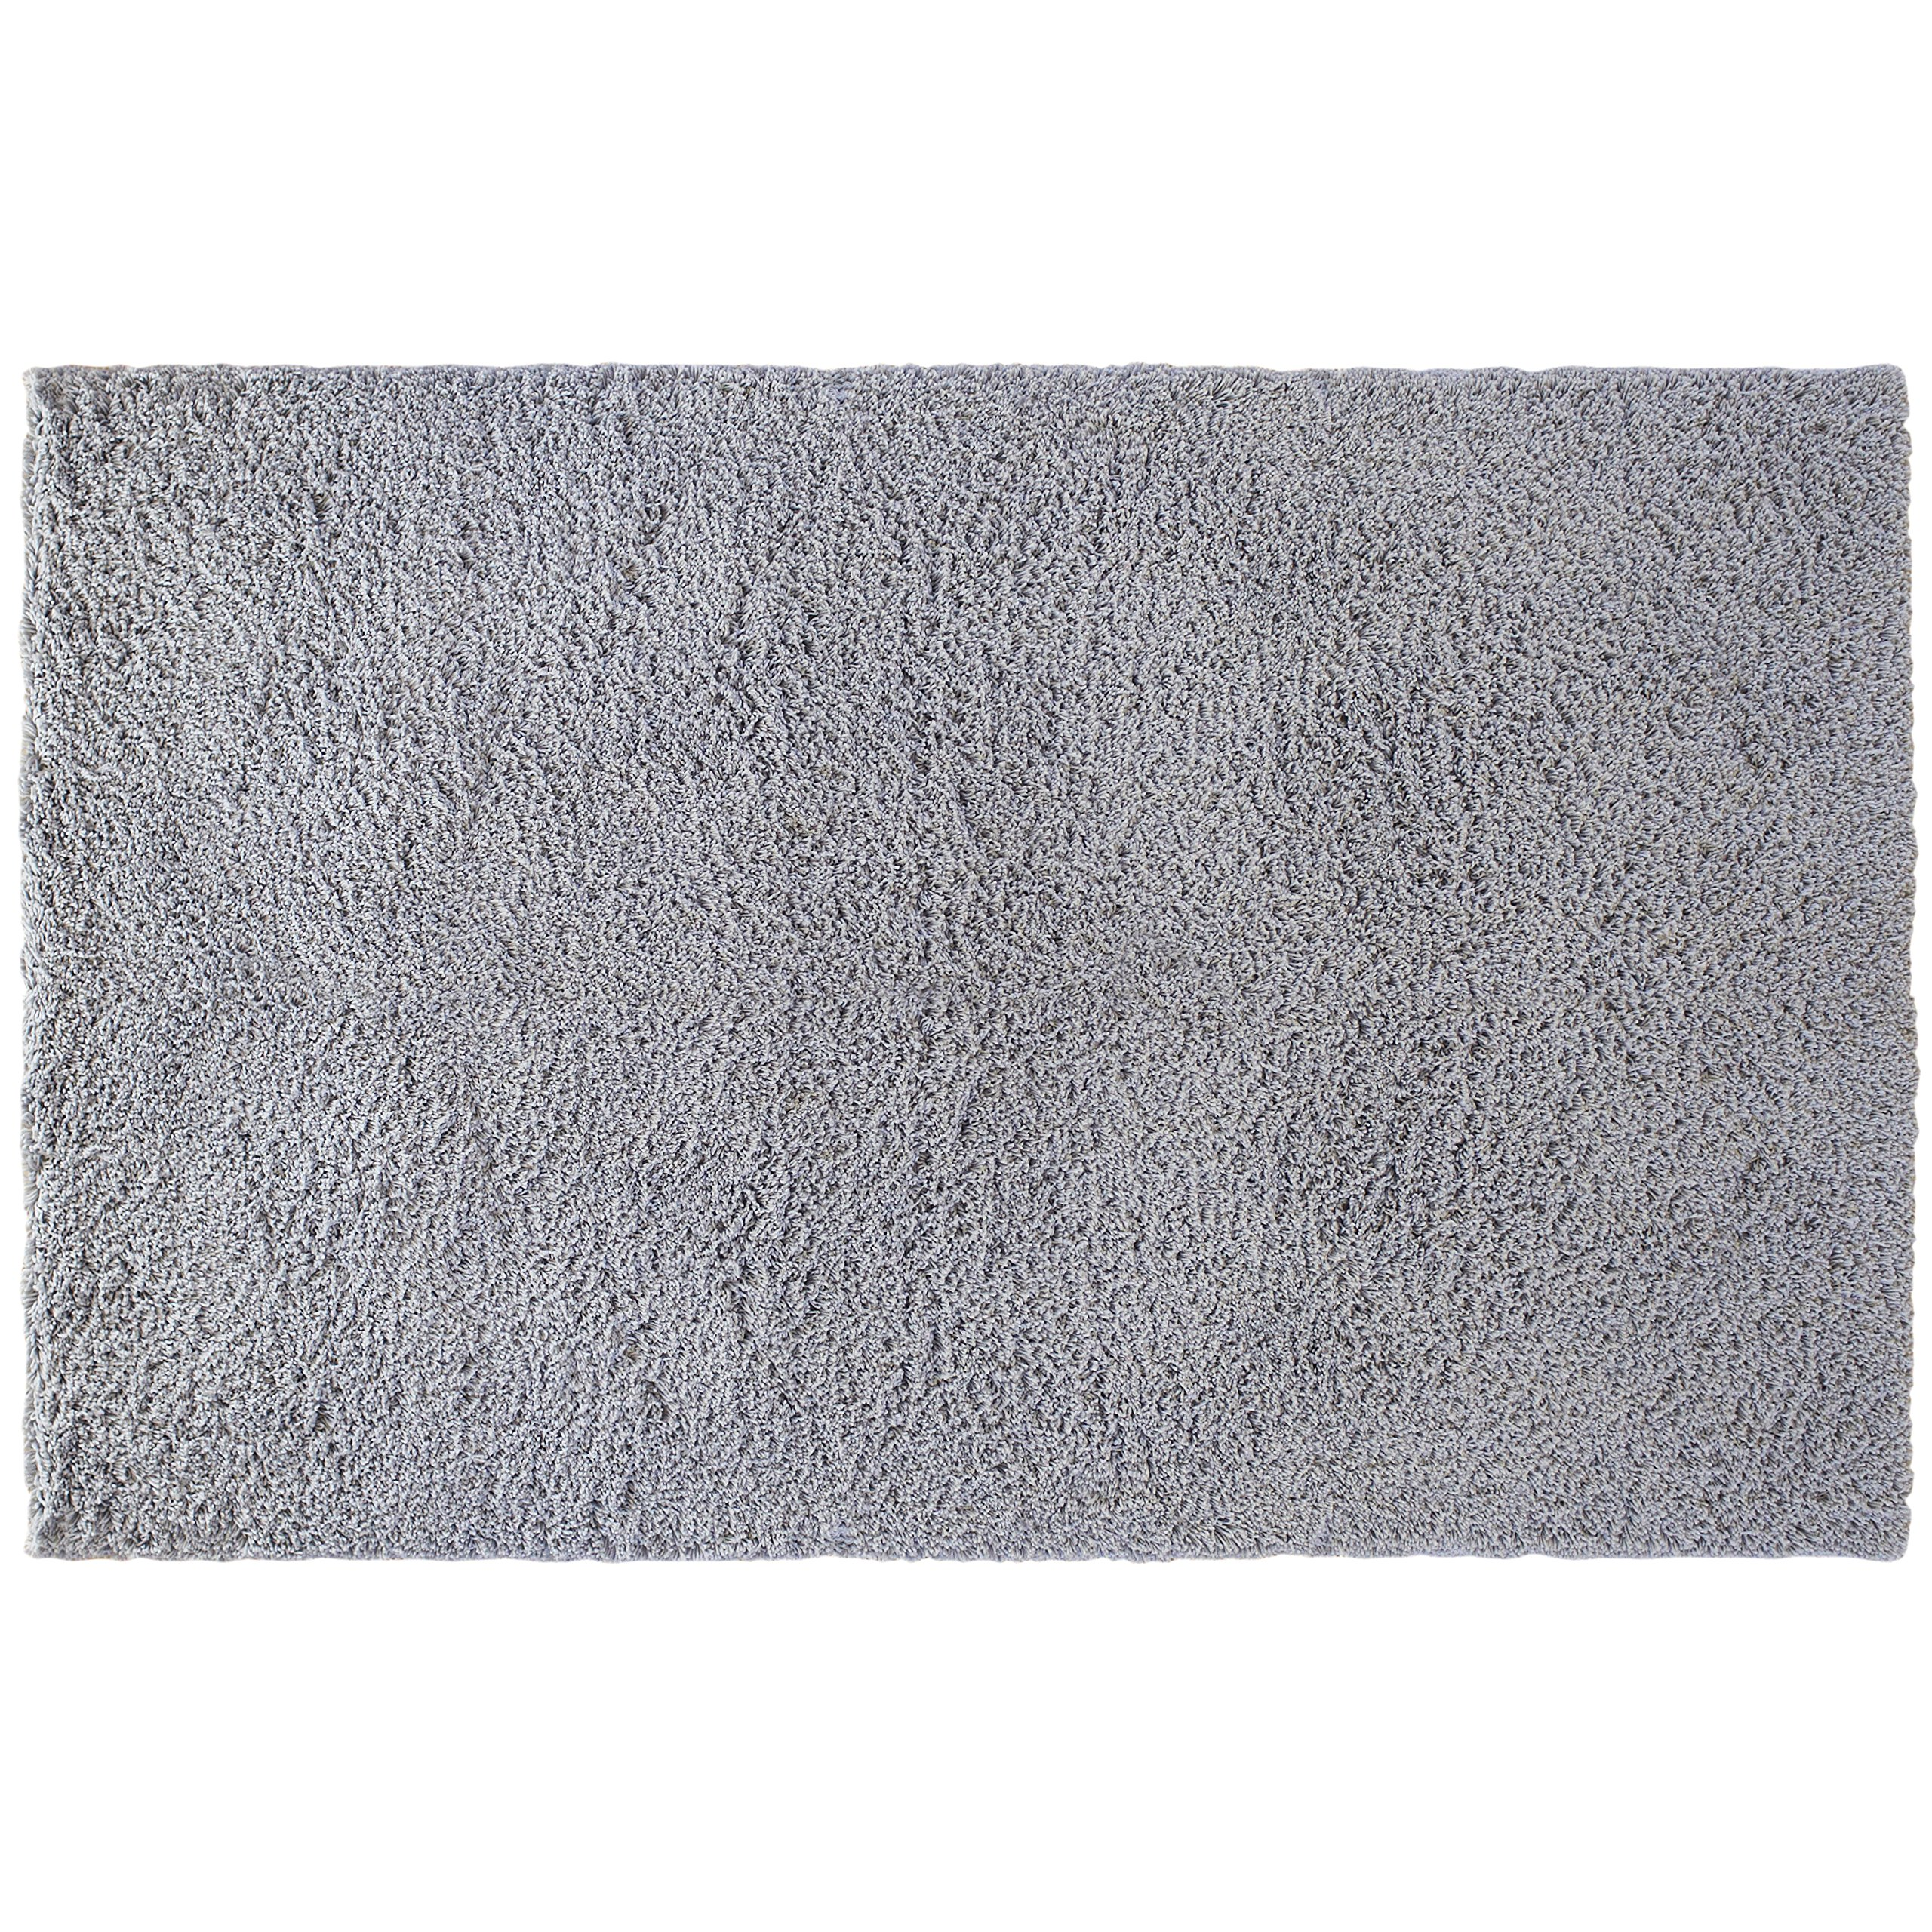 Little Love by NoJo Shag Nursery Rug, Solid Grey, 3'9'' x 5'9'' by NoJo